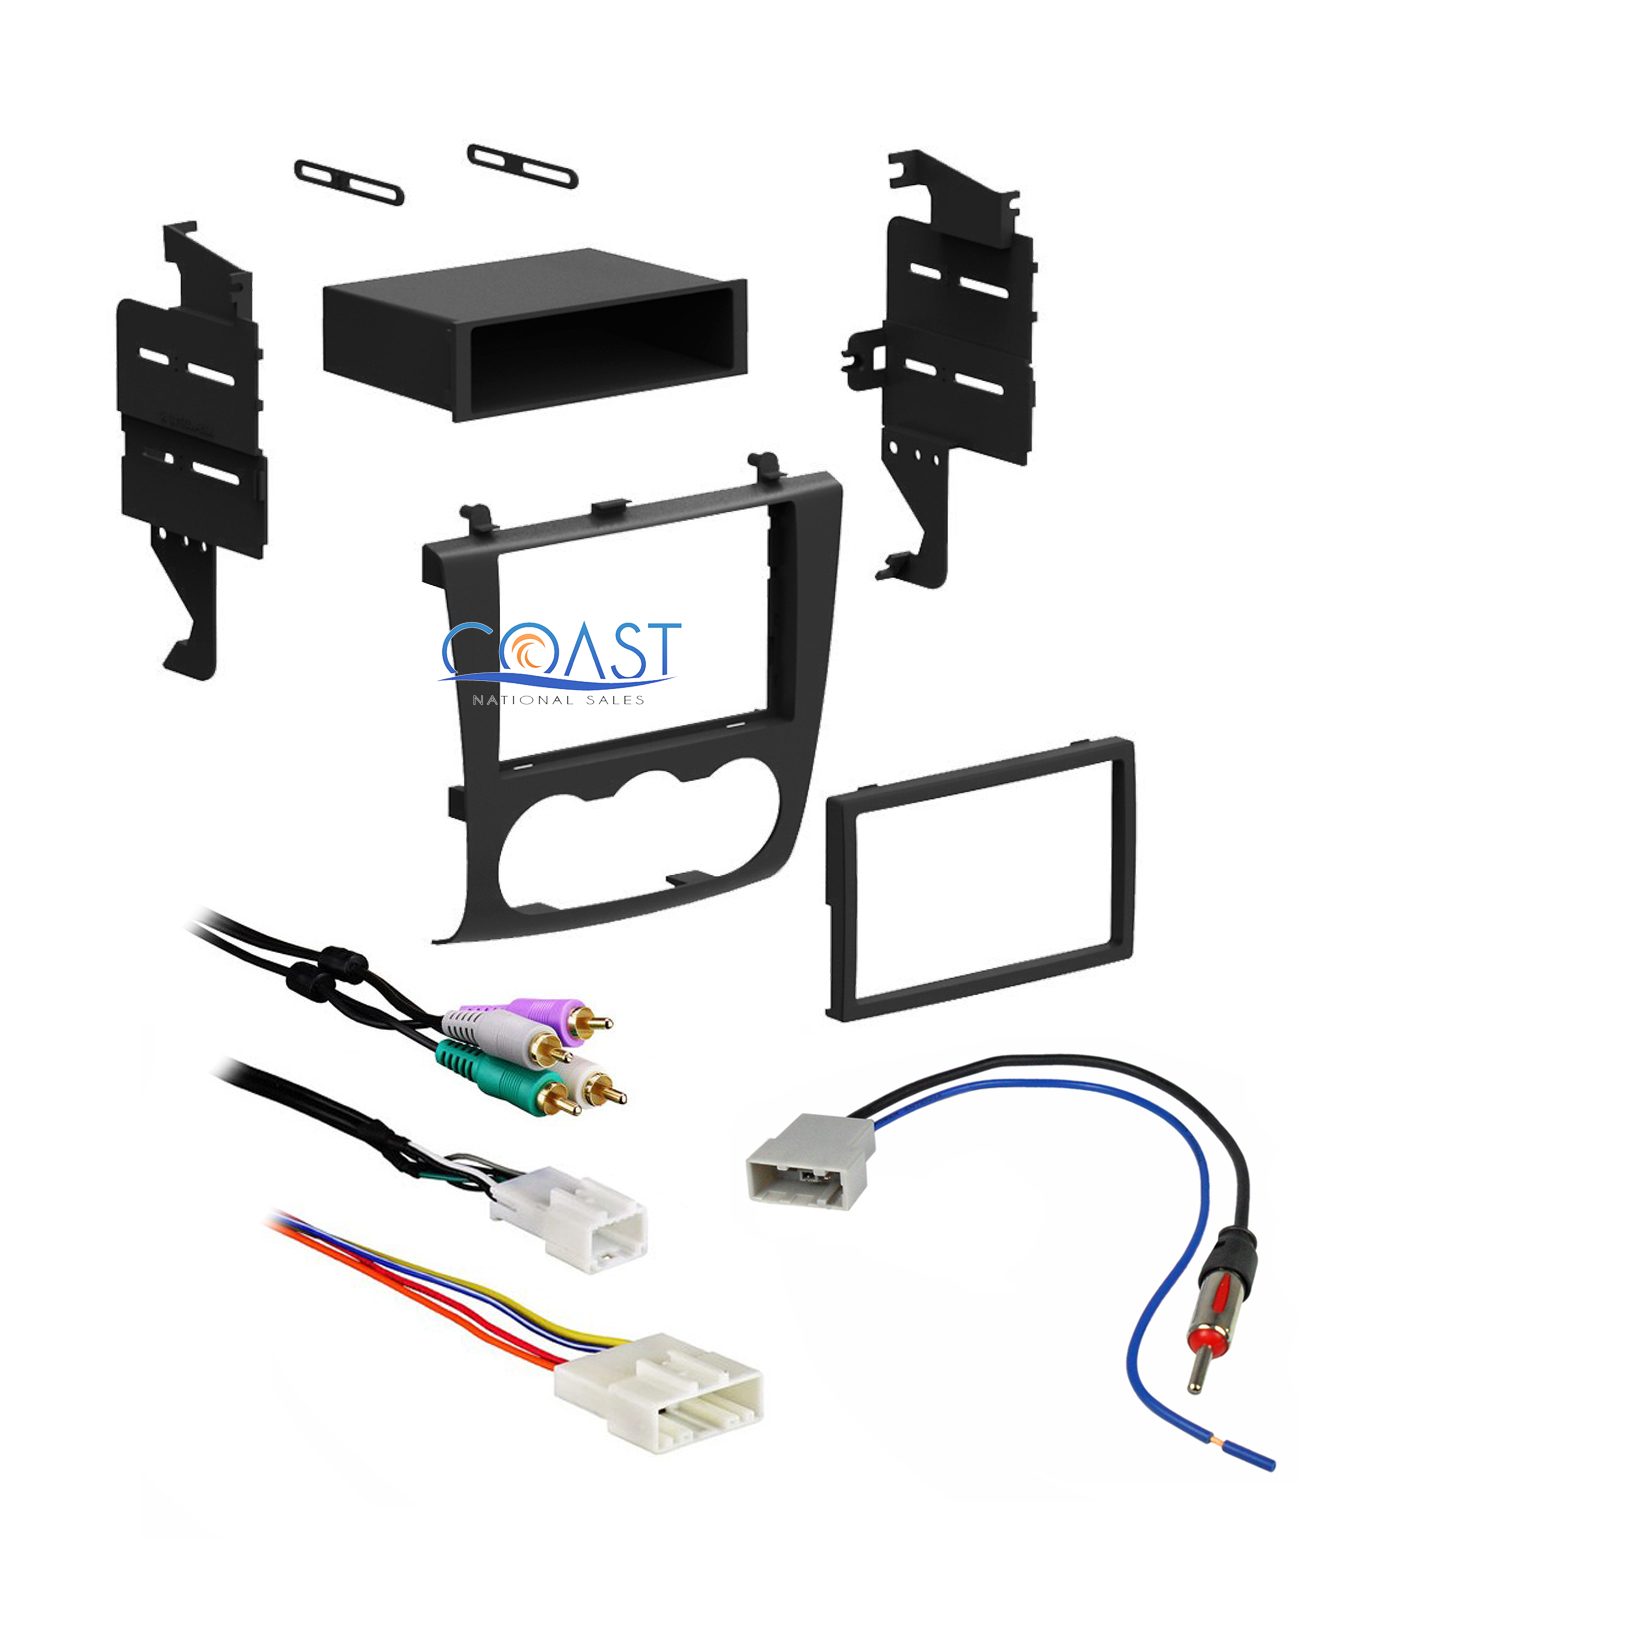 bose car stereo wiring diagrams car stereo double din dash kit bose wiring harness antenna ... #7